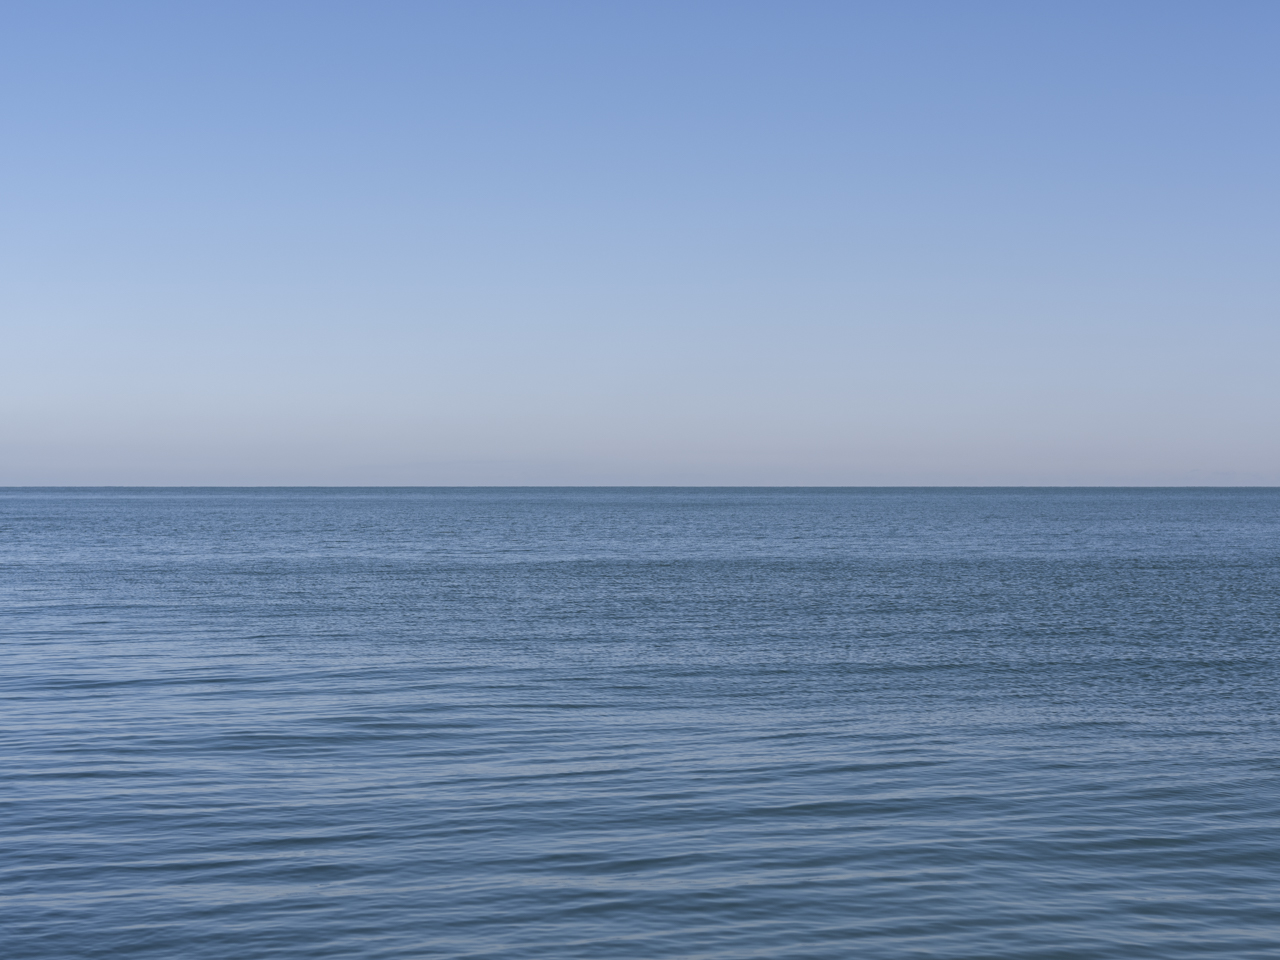 An almost still day with a clear blue sky and water on Lake Michigan